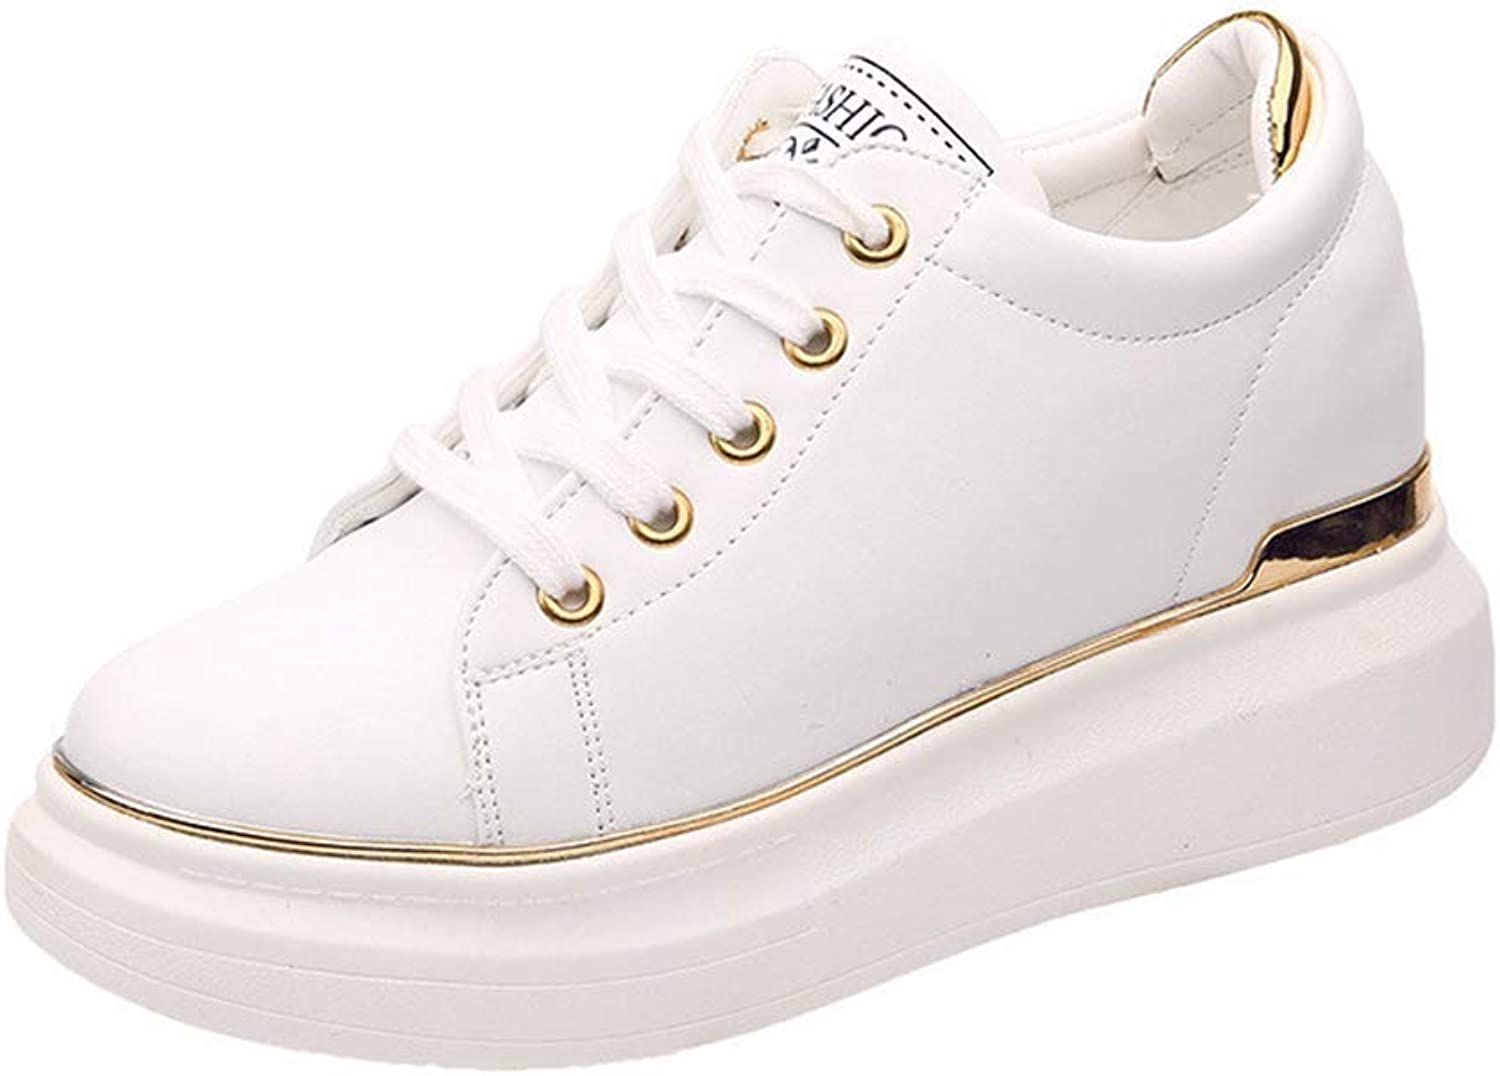 Btrada Spring Autumn White Sneakers shoes Women Casual Hidden Wedges Thick Heels Ladies Platform shoes